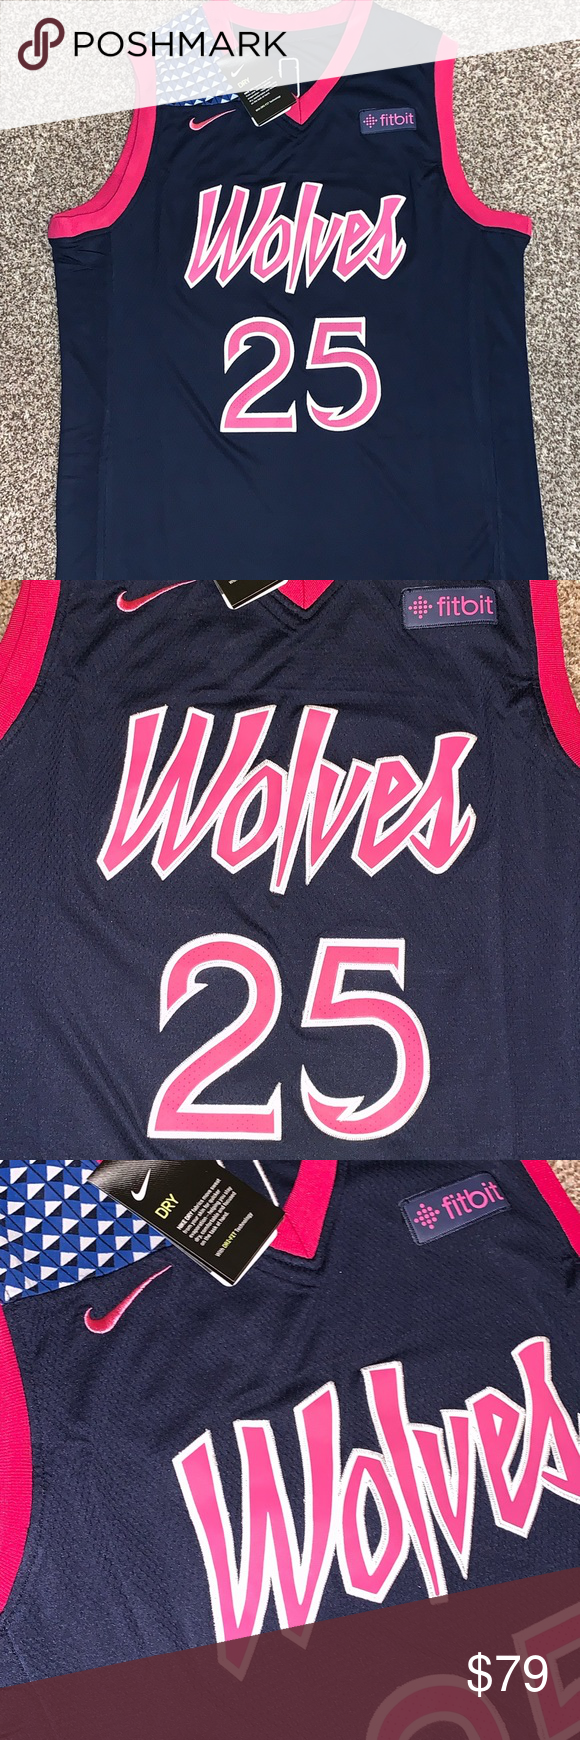 info for 74278 8ca59 Derrick Rose Minnesota Timberwolves City Edition Derrick ...